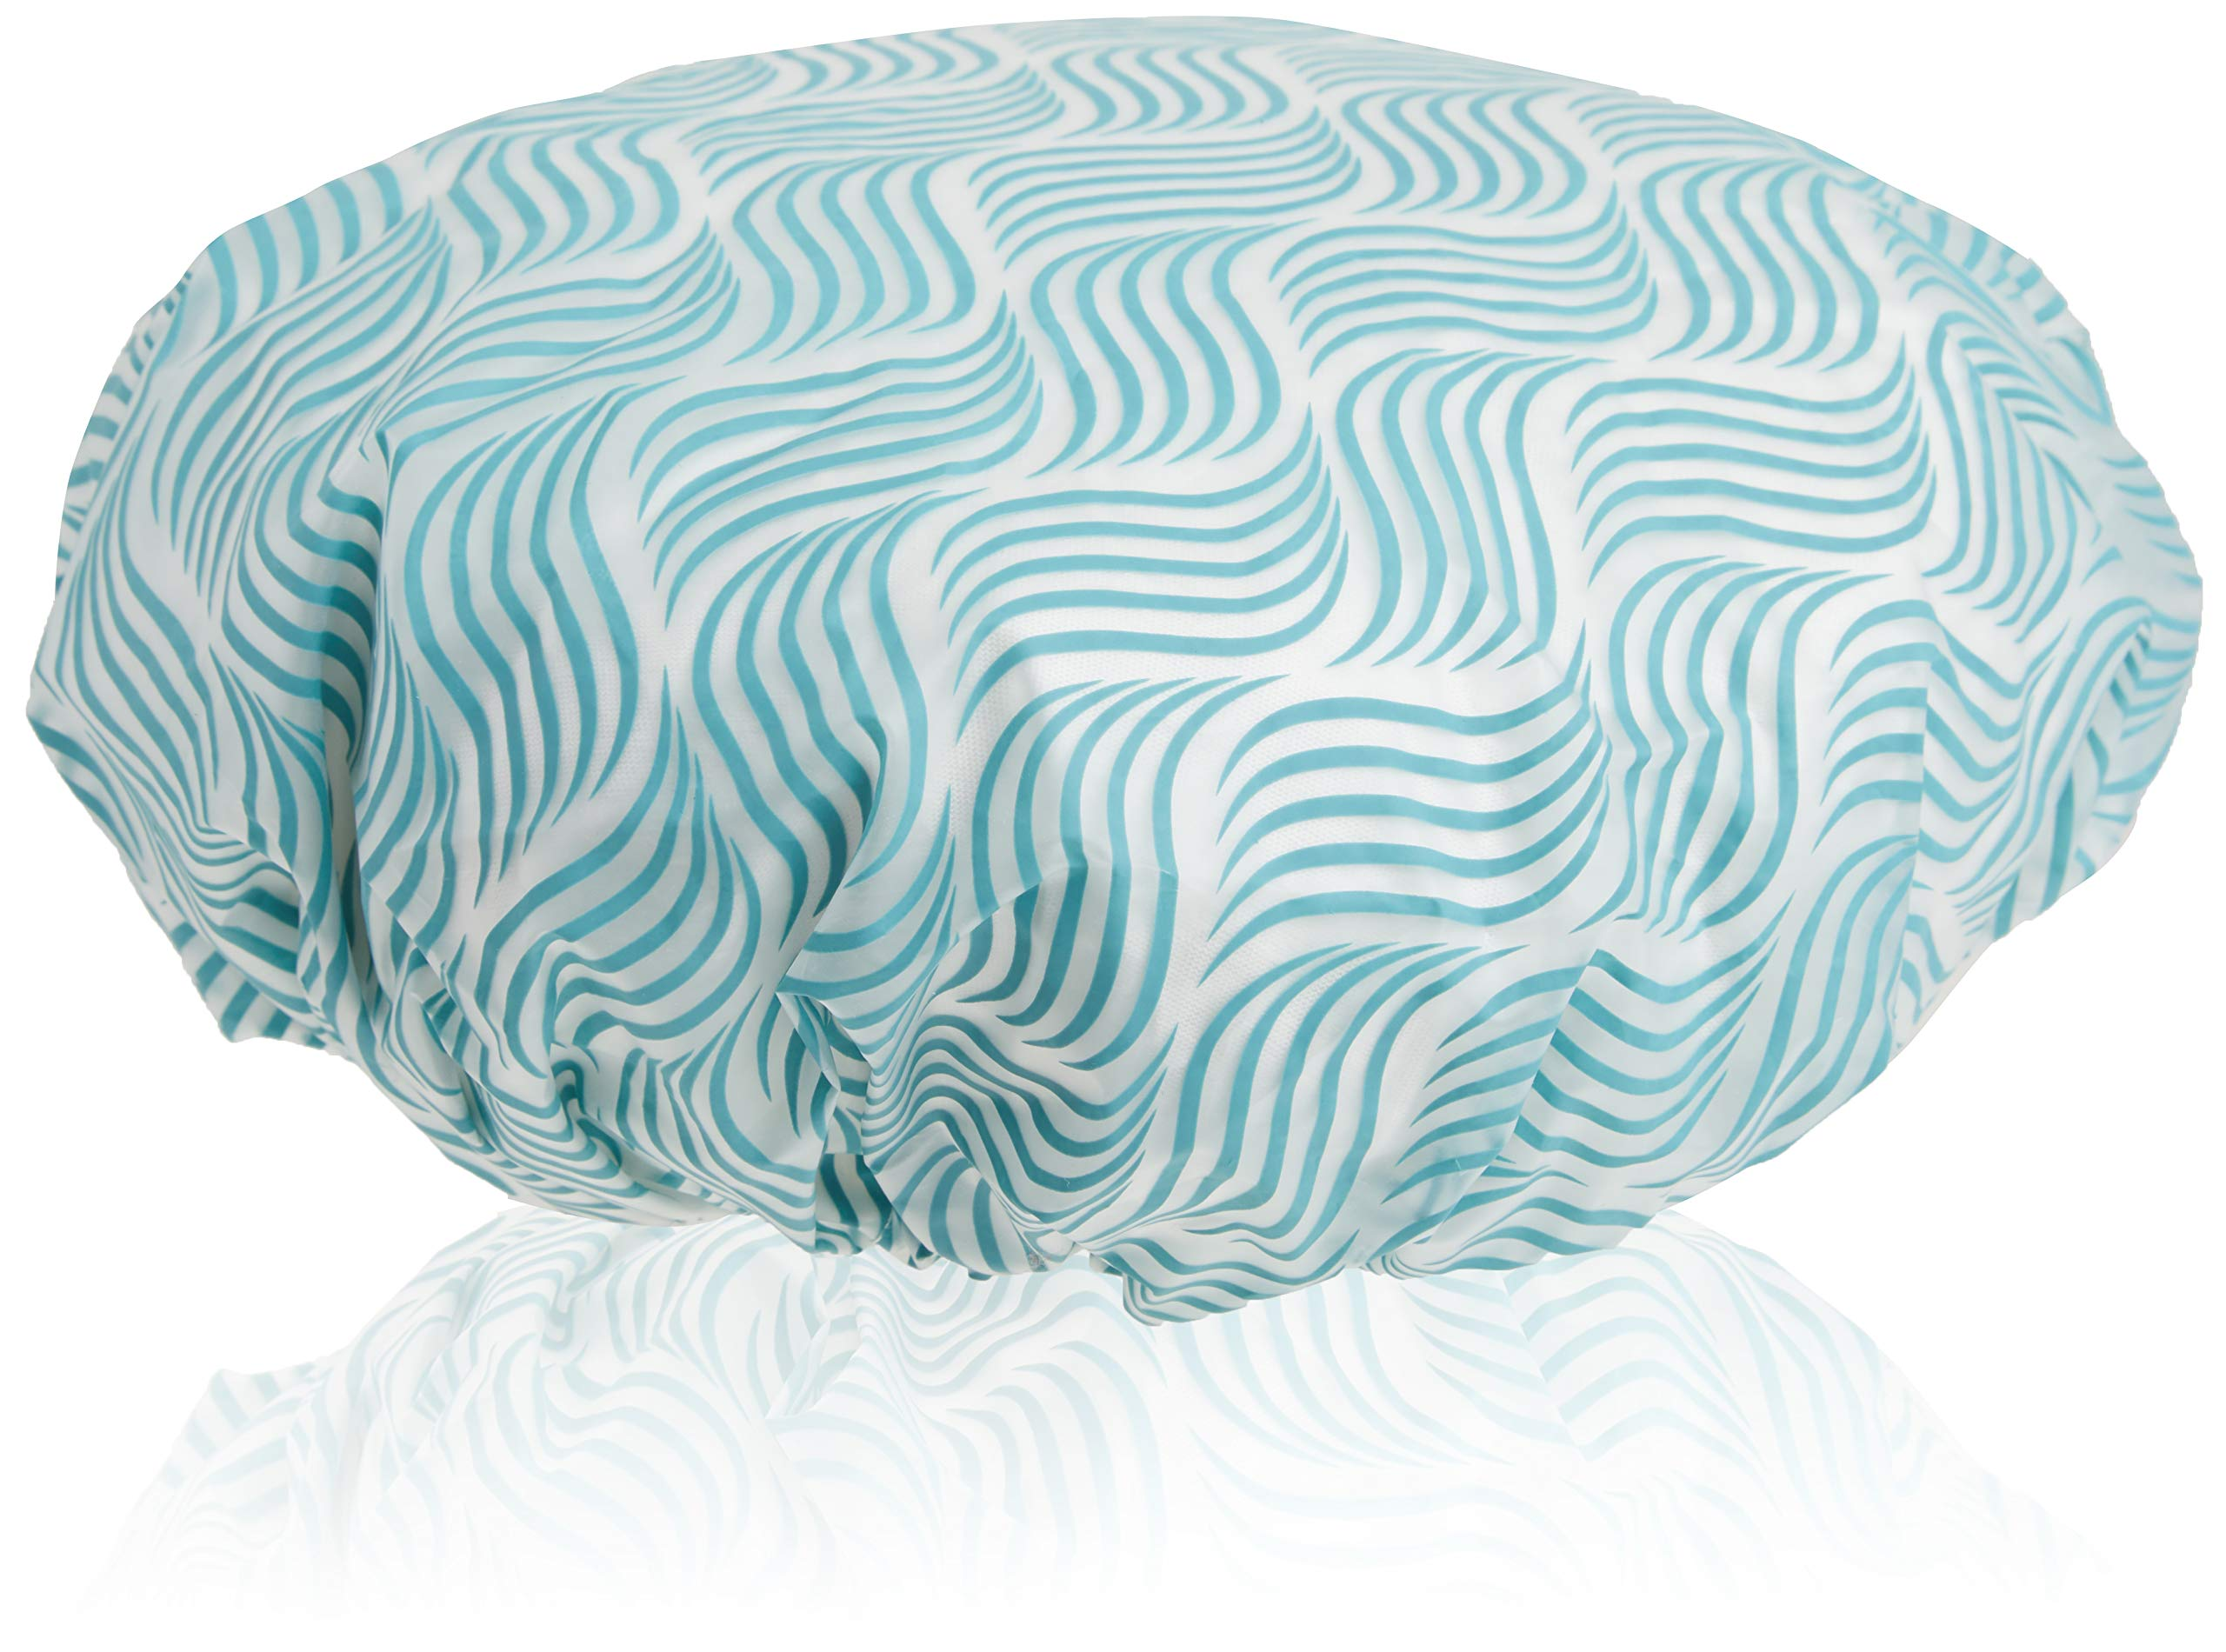 EcoTools Reusable Shower Cap for Women With Travel Storage Case, Made with Recycled and Sustainable Materials